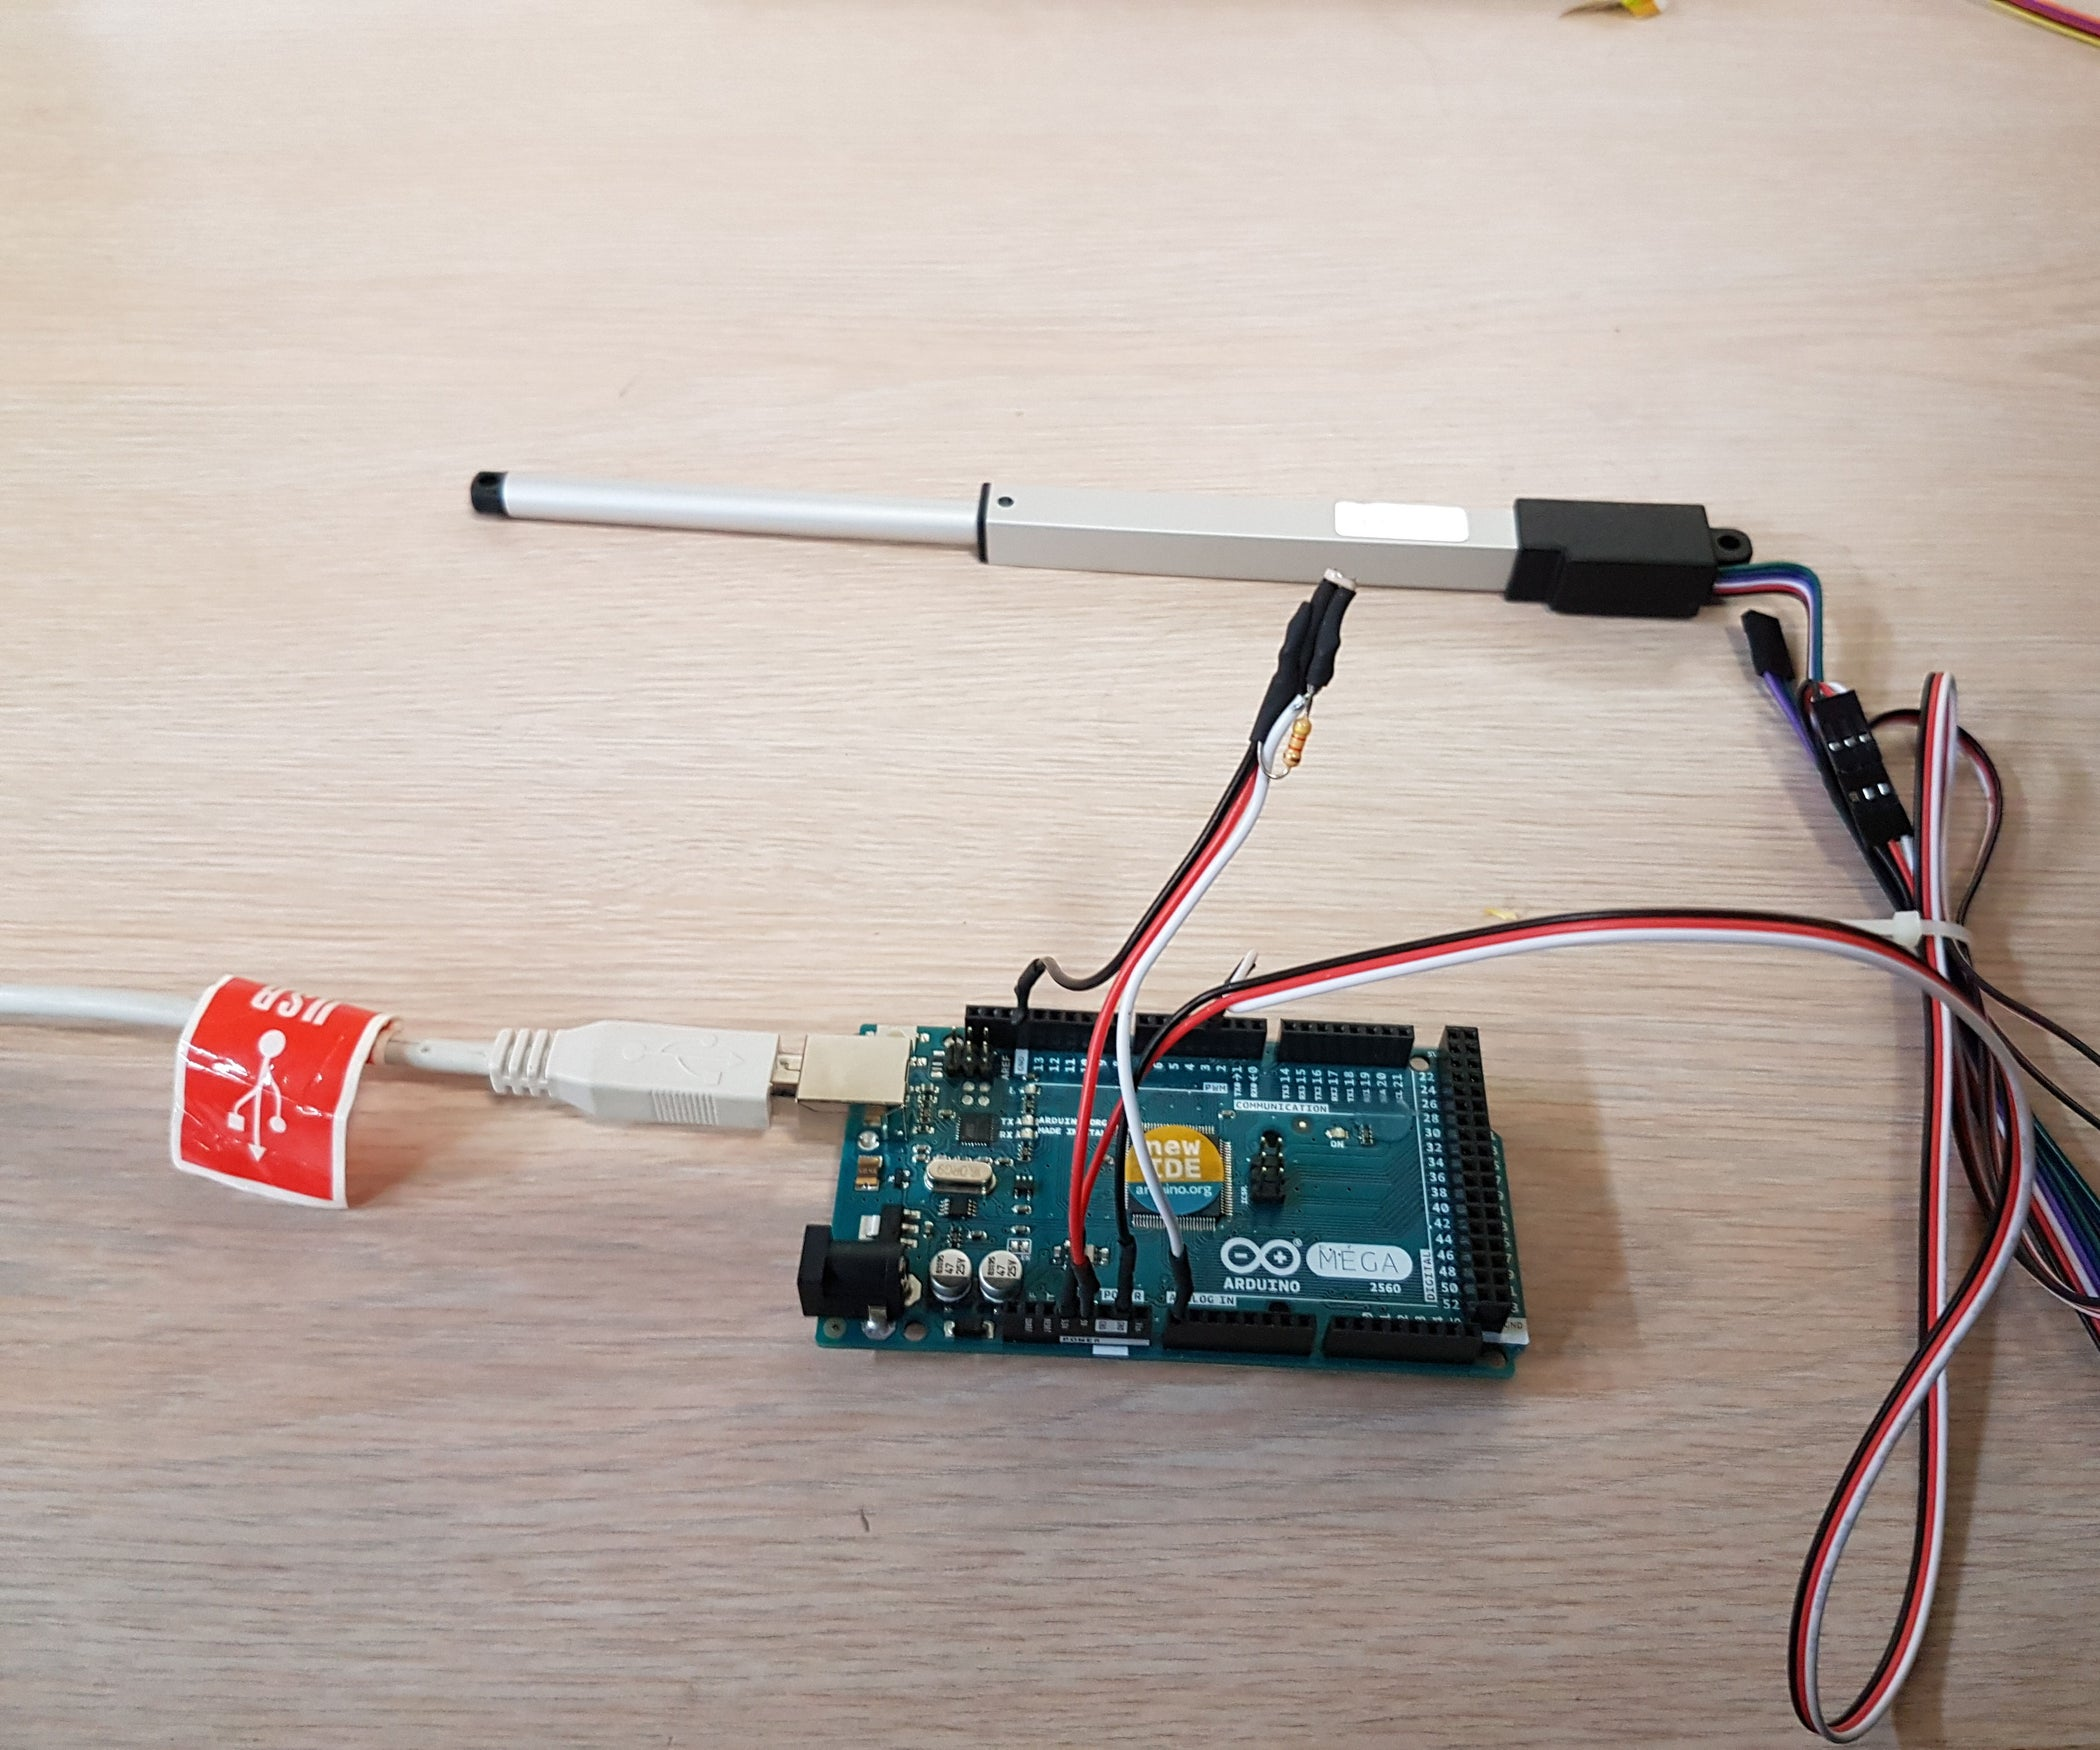 Phenomenal Using A Linear Actuator With Arduino And Photoresistor 3 Steps Wiring Cloud Intelaidewilluminateatxorg